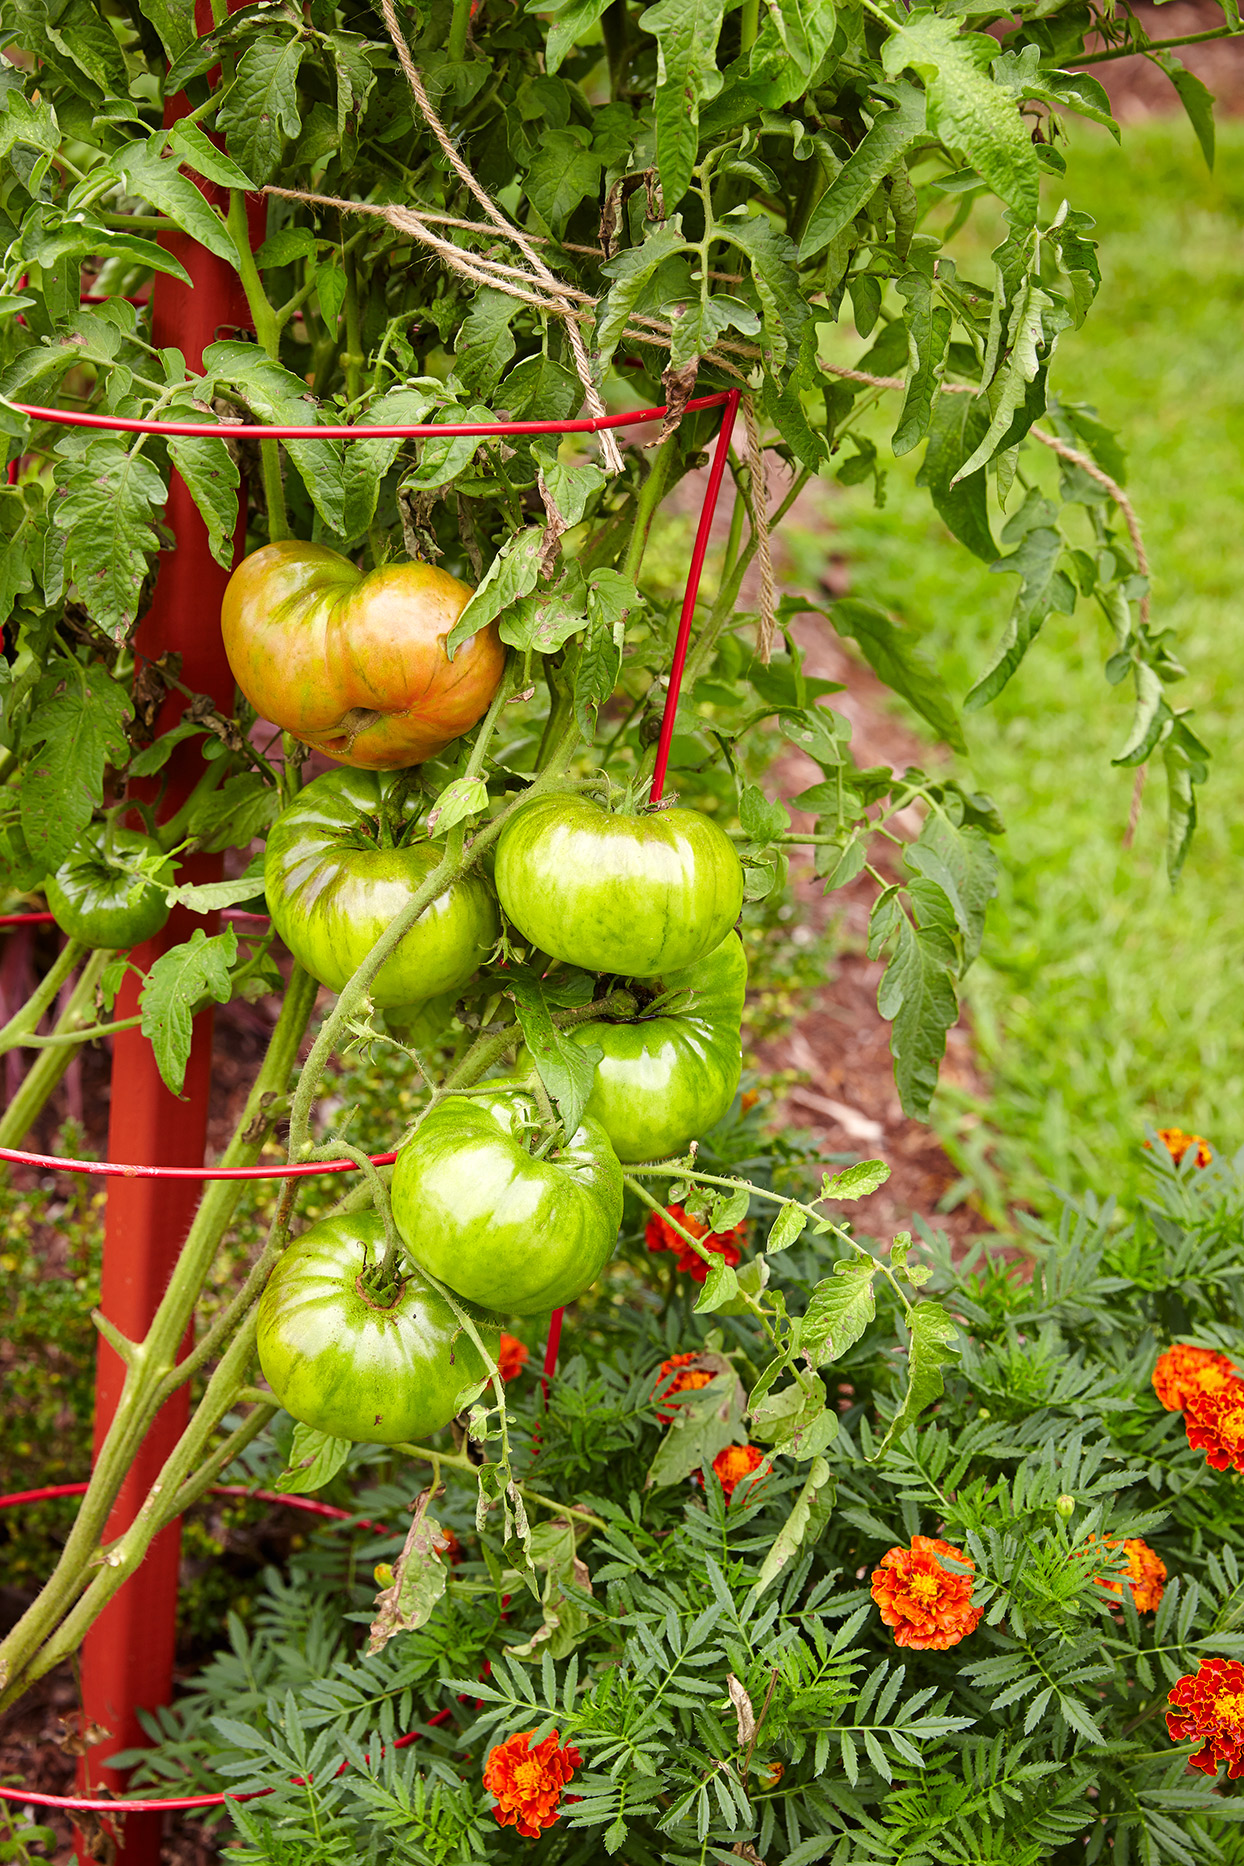 tomato plant with green tomatoes in garden with cage and stake